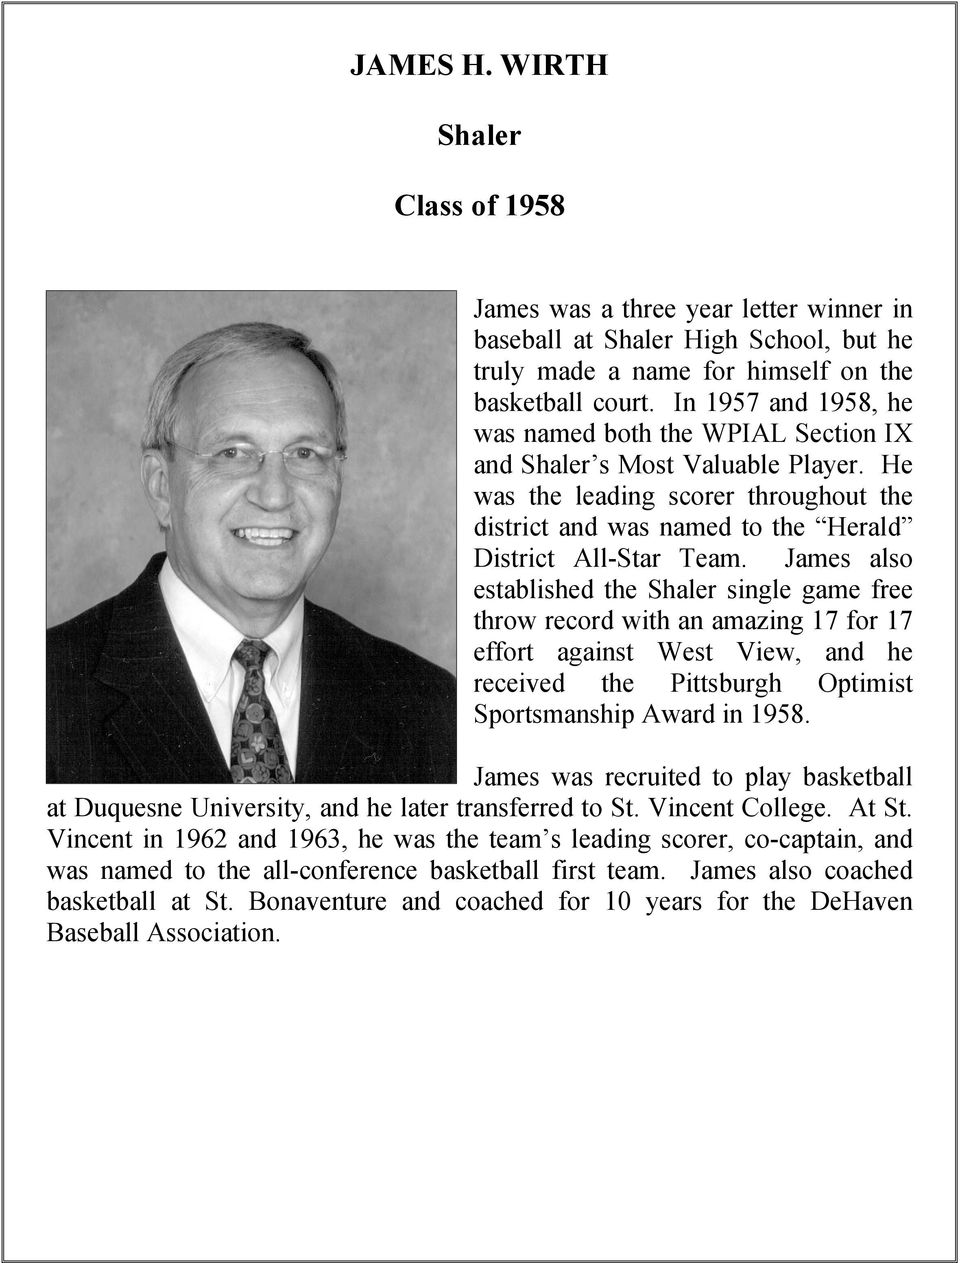 James also established the Shaler single game free throw record with an amazing 17 for 17 effort against West View, and he received the Pittsburgh Optimist Sportsmanship Award in 1958.